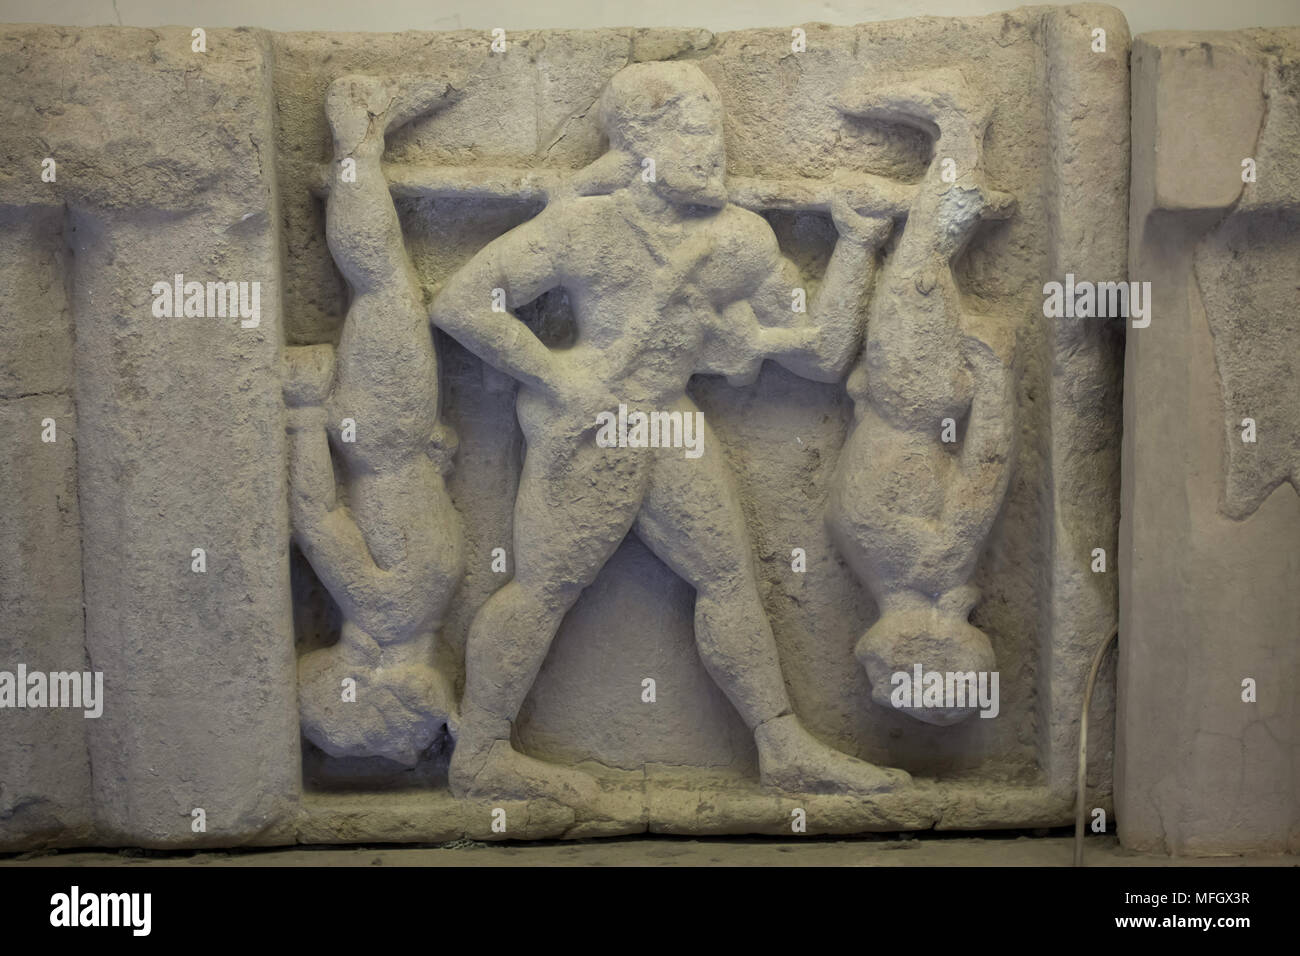 Heracles punishing the Cercopes. Archaic sandstone metope from the Heraion (First Temple of Hera) at Foce del Sele dated from the middle of the 6th century BC on display in the Paestum Archaeological Museum (Museo archeologico di Paestum) in Paestum, Campania, Italy. - Stock Image